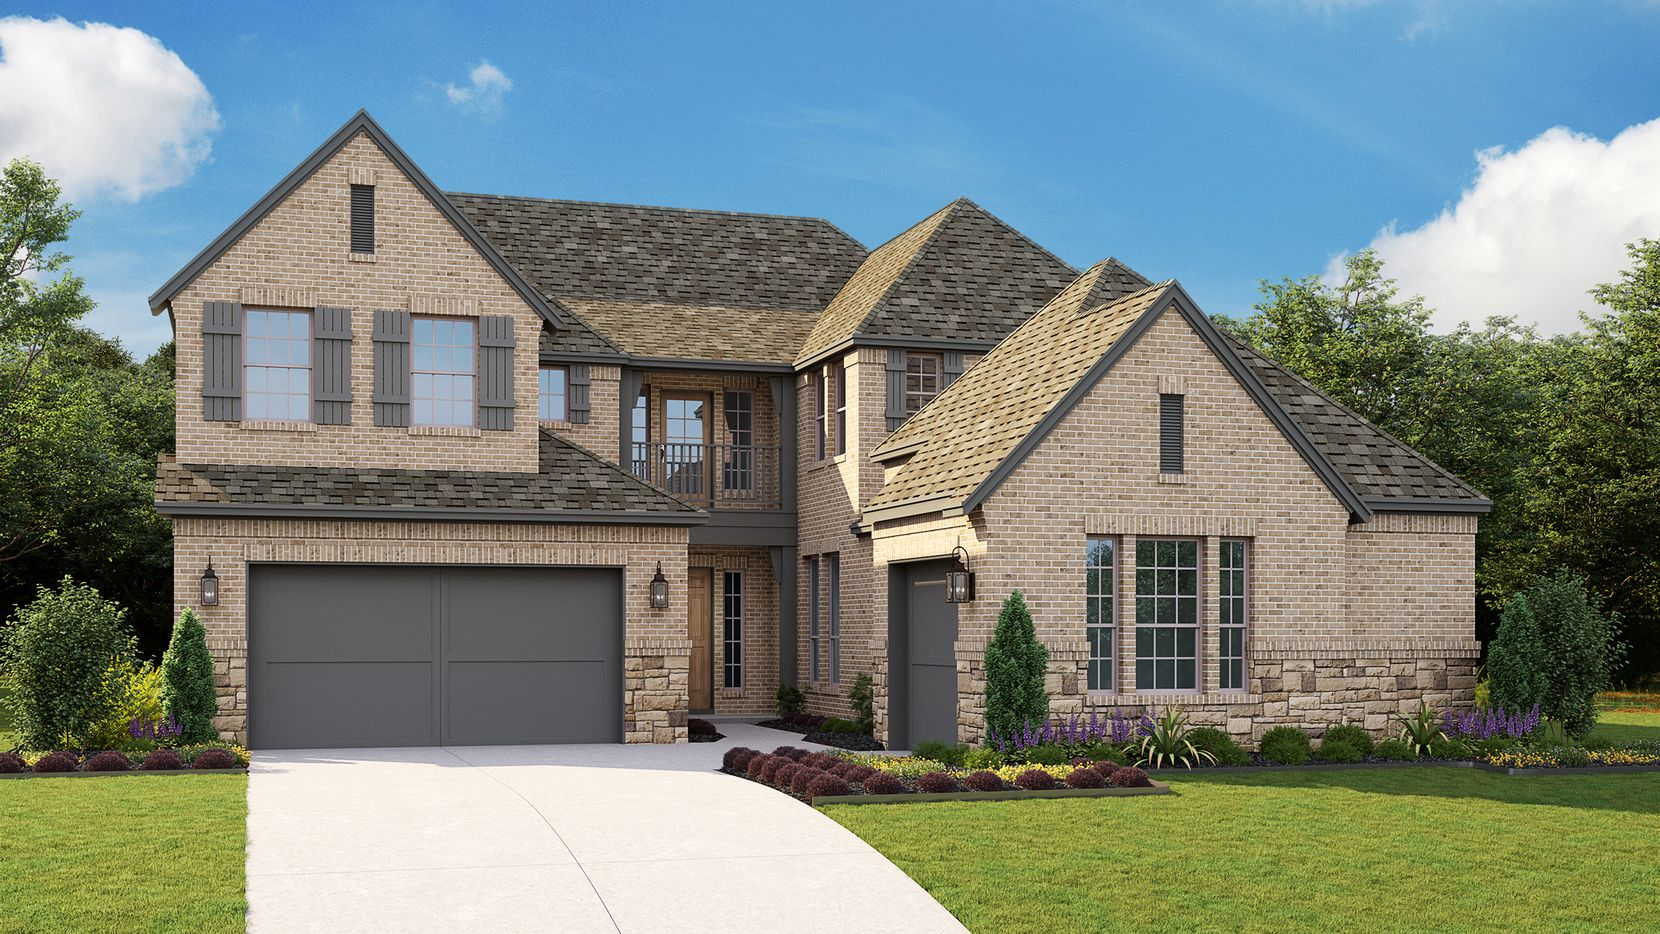 The home at 3905 Campania Court in the gated community of Creekside at Colleyville offers 3,854 square feet of interior space, four bedrooms, 4½ bathrooms and a three-car garage.